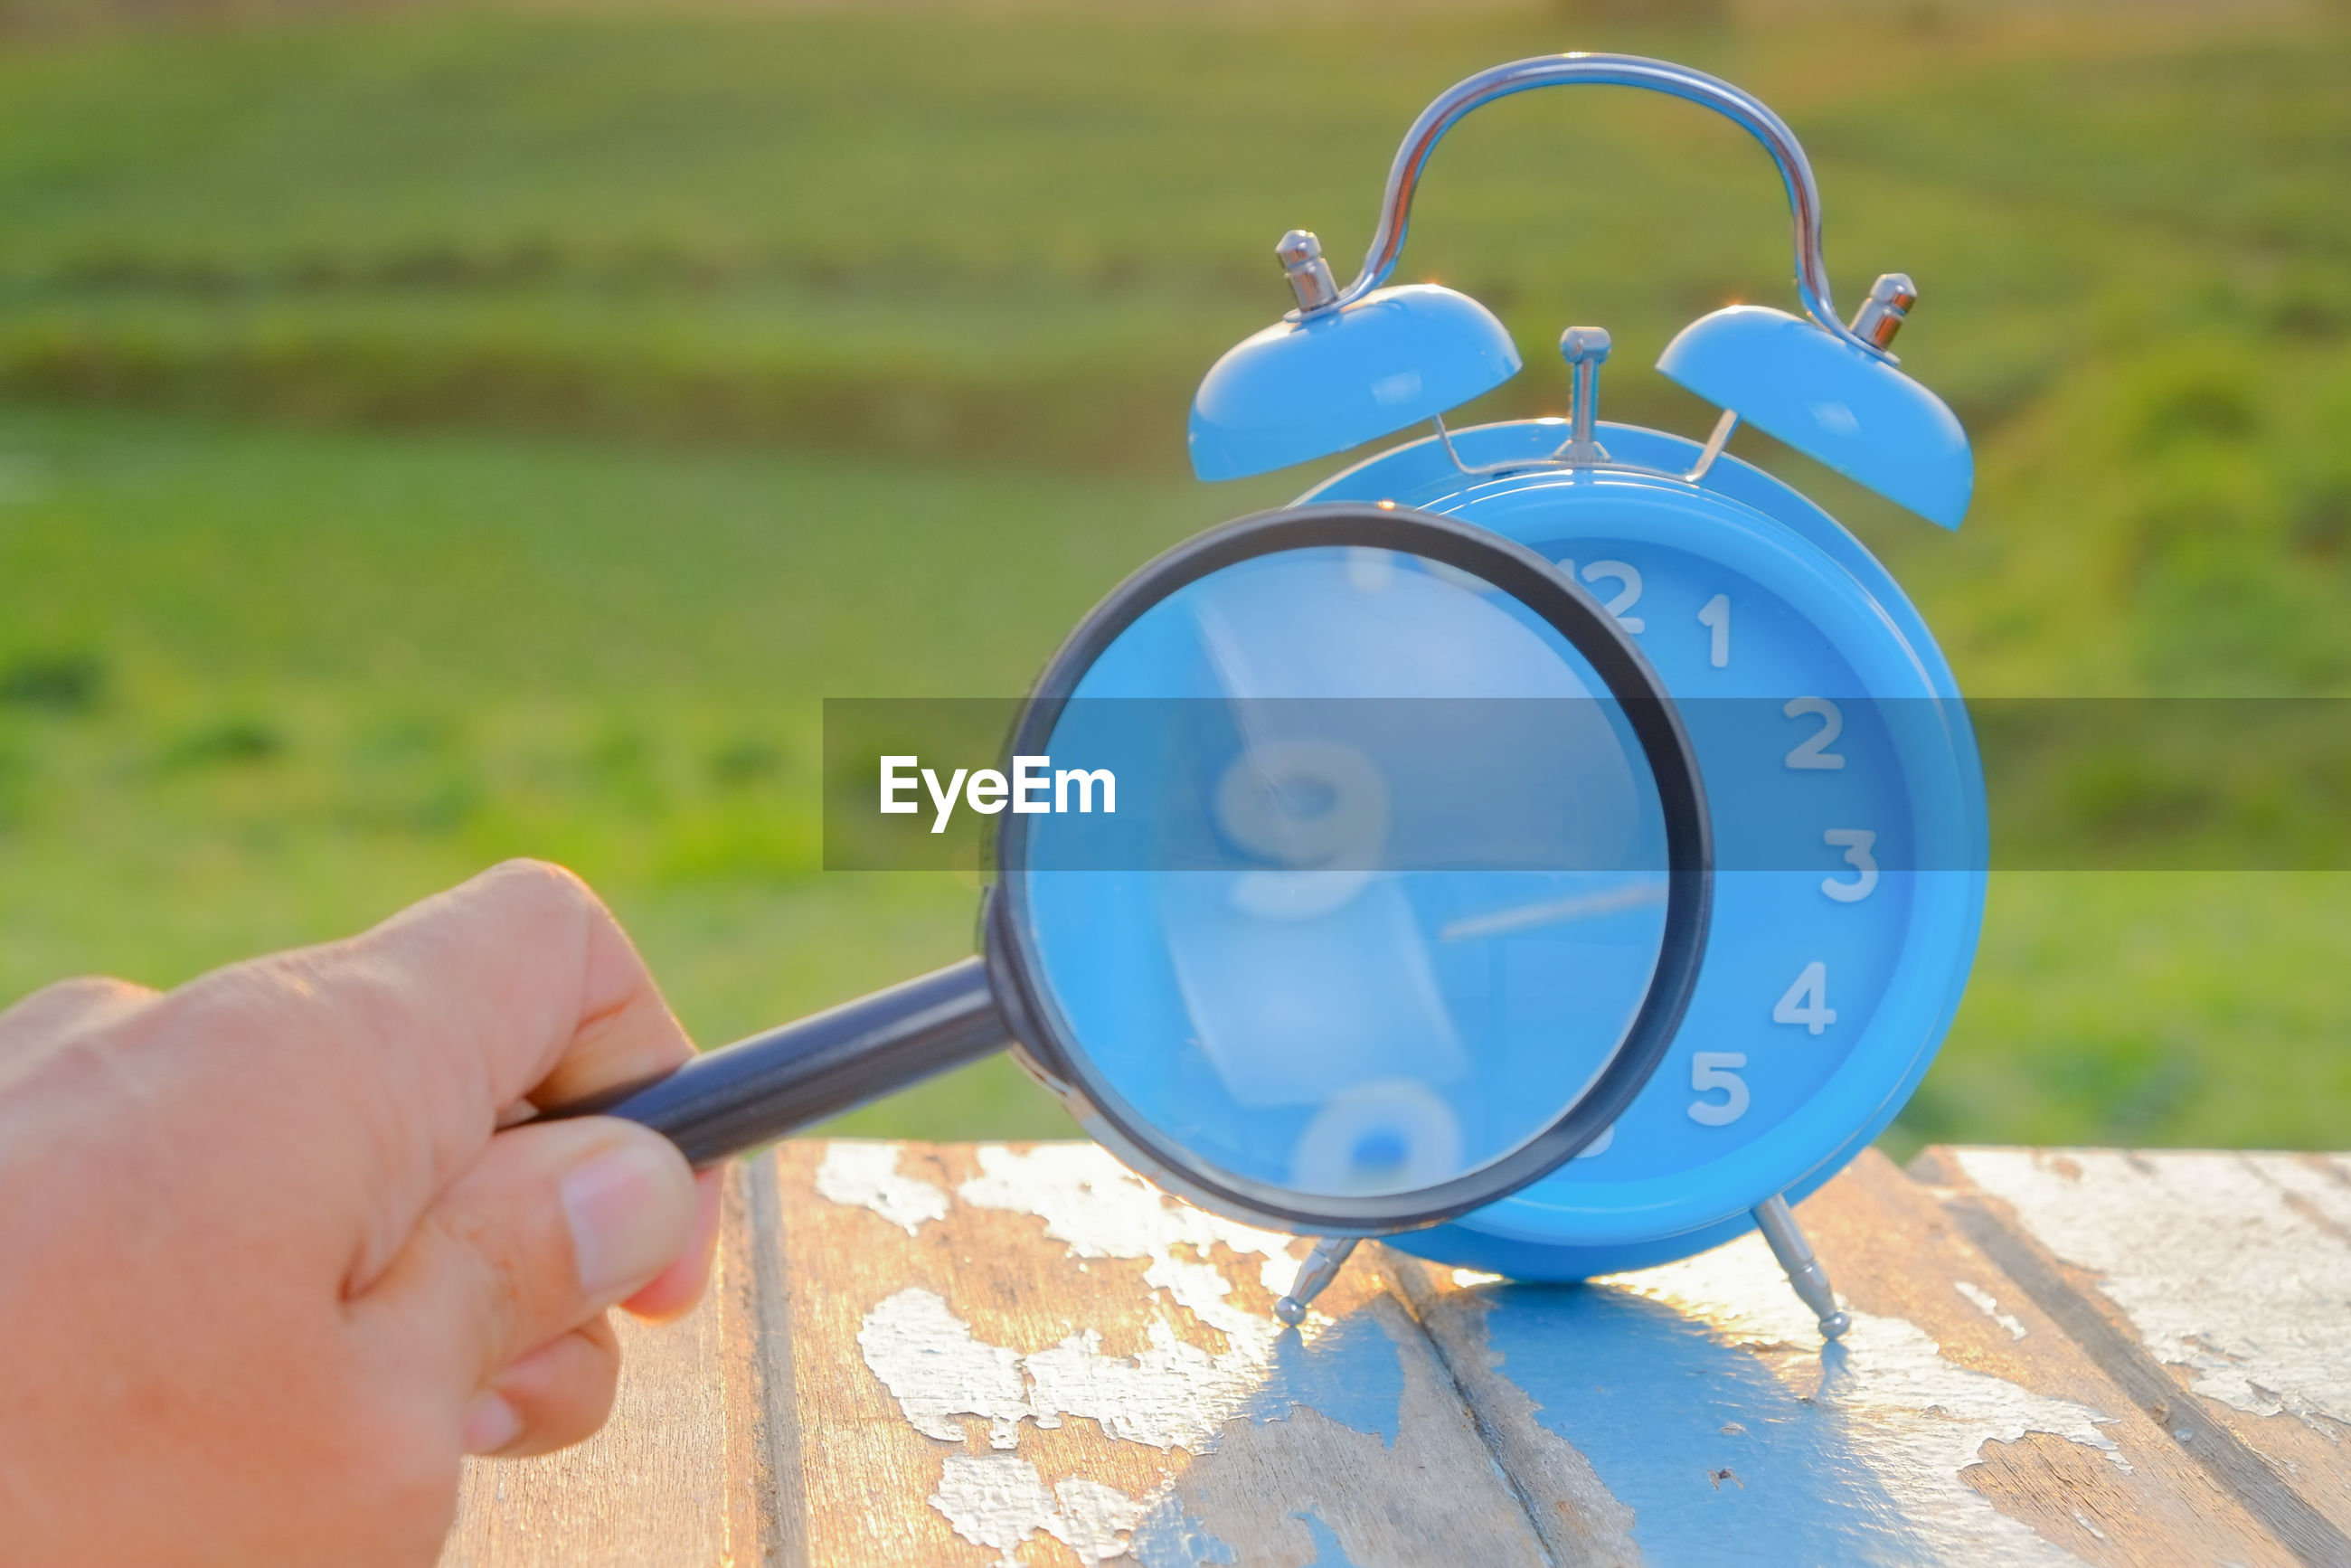 Cropped hand holding magnifying glass by alarm clock on field